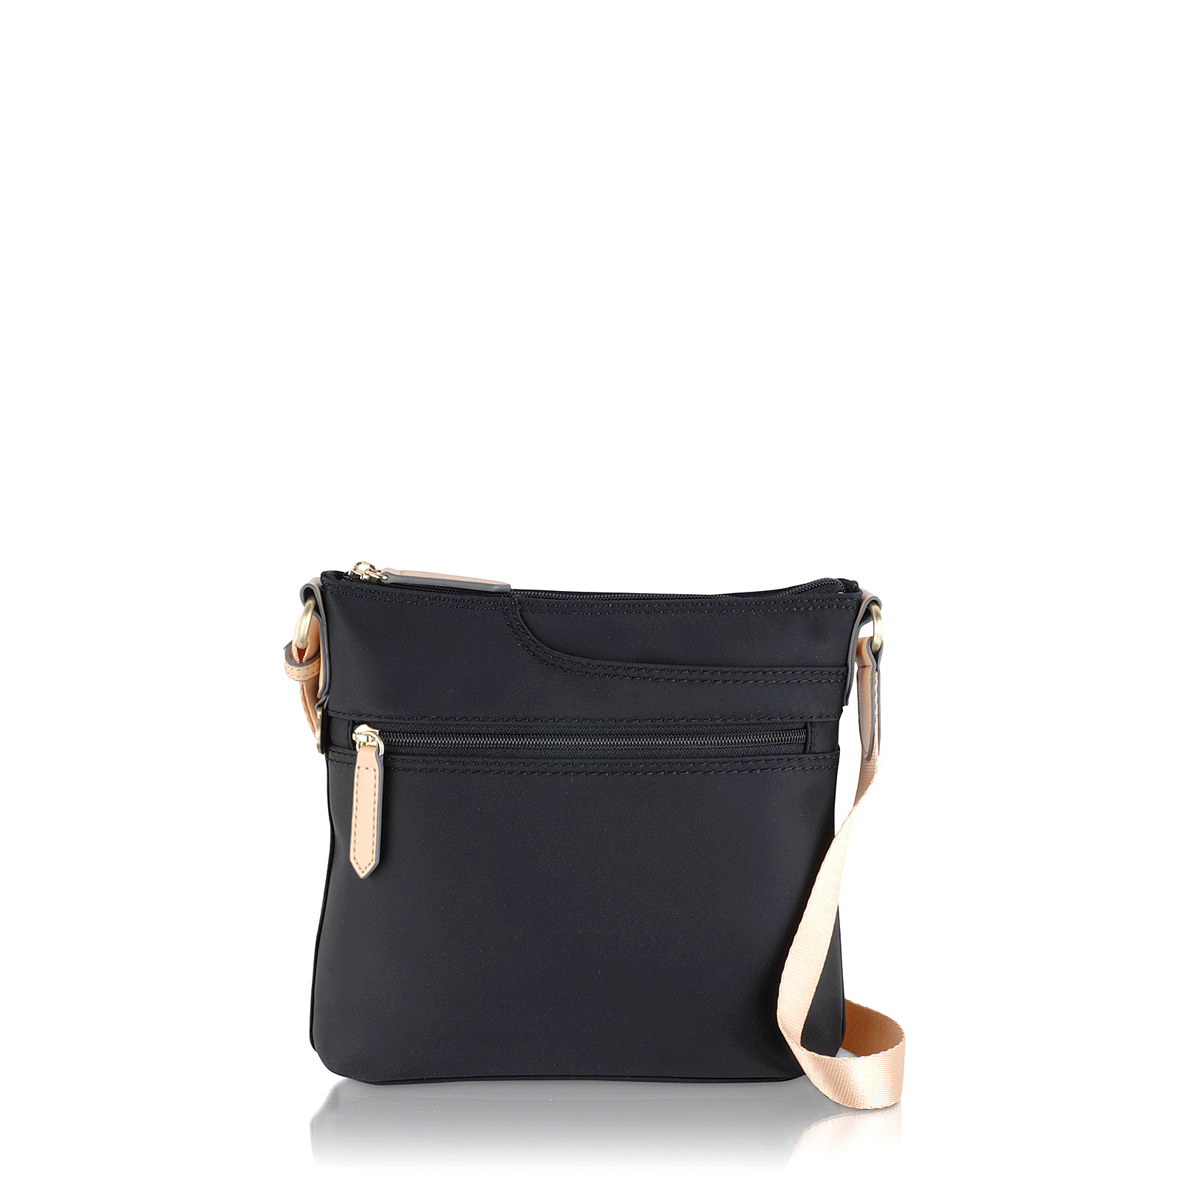 Radley Pocket Essentials Cross Body Bag, Black